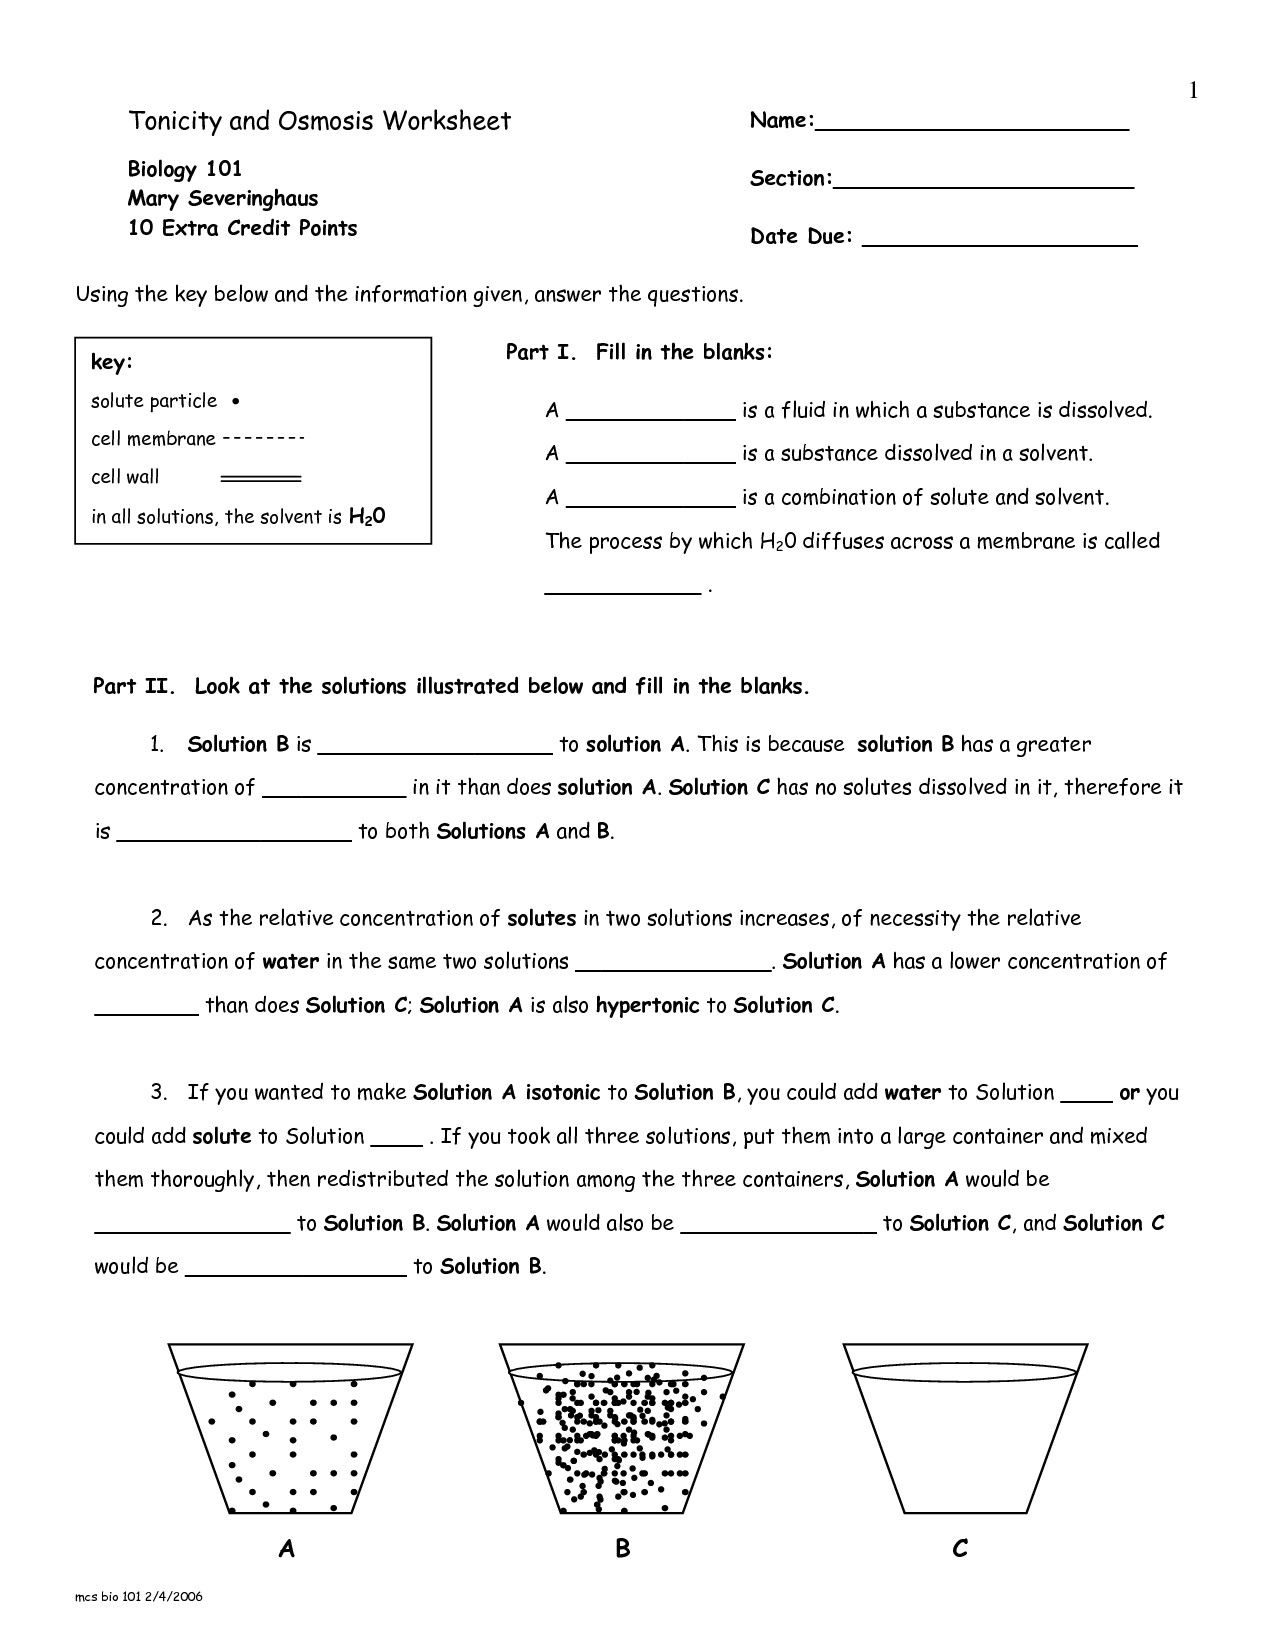 Cellular Transport Worksheet Section A Cell Membrane